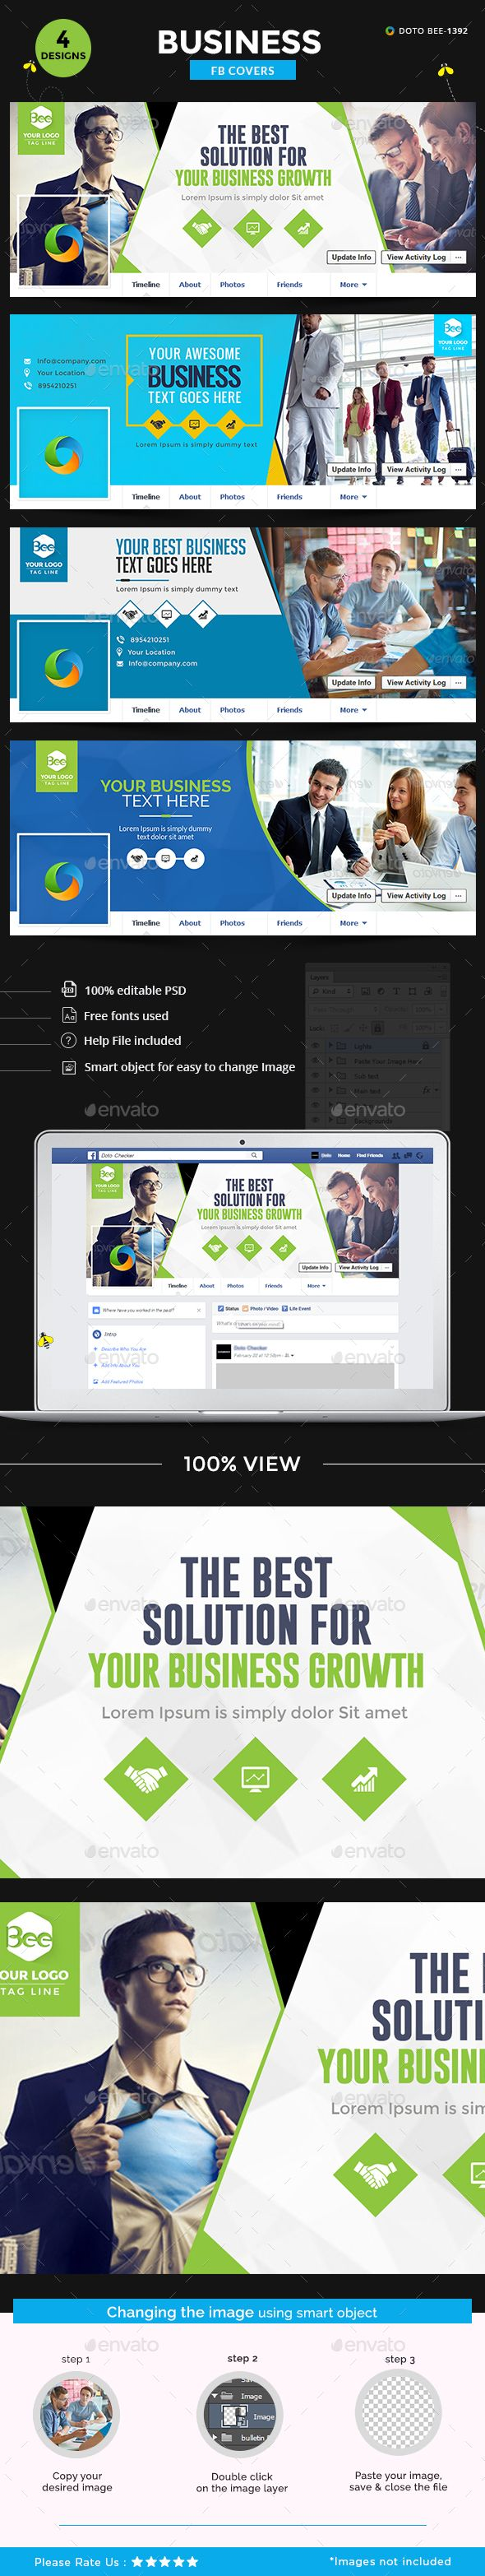 The 25 best facebook cover design ideas on pinterest facebook business facebook covers 4 designs pronofoot35fo Image collections